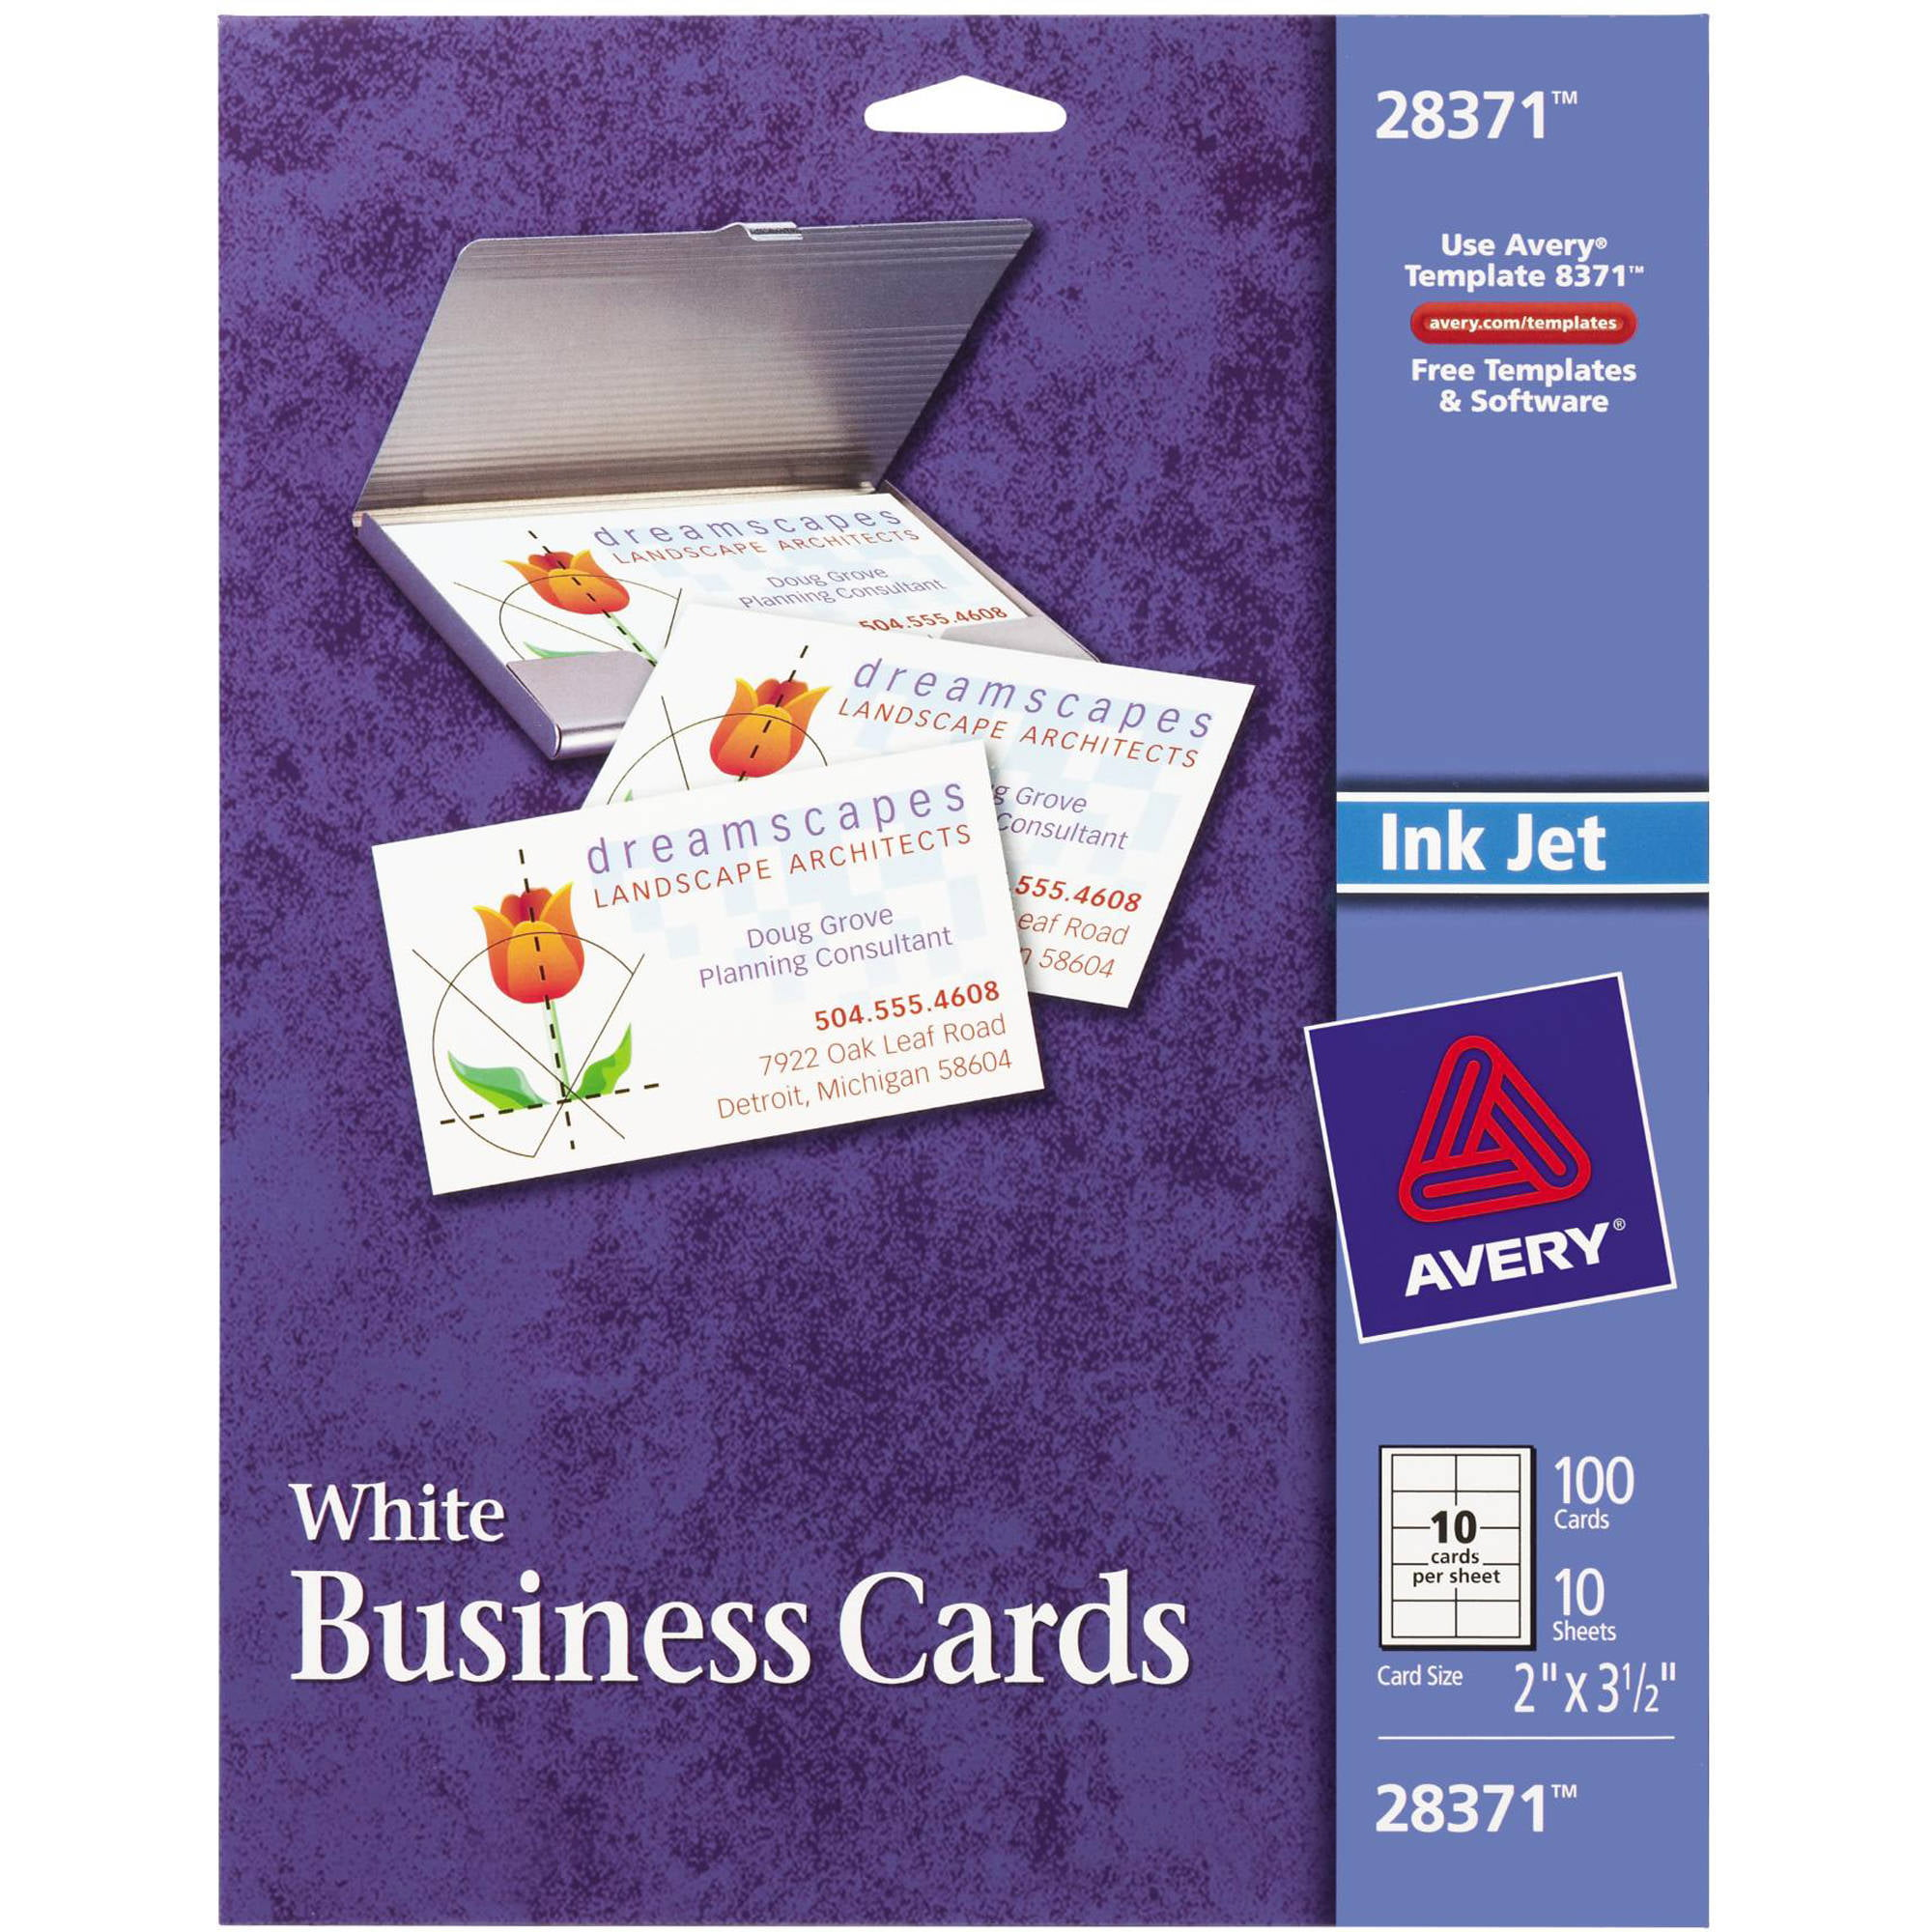 Averyr matte business cards for inkjet printers 28371 pack of 100 averyr matte business cards for inkjet printers 28371 pack of 100 walmart cheaphphosting Image collections